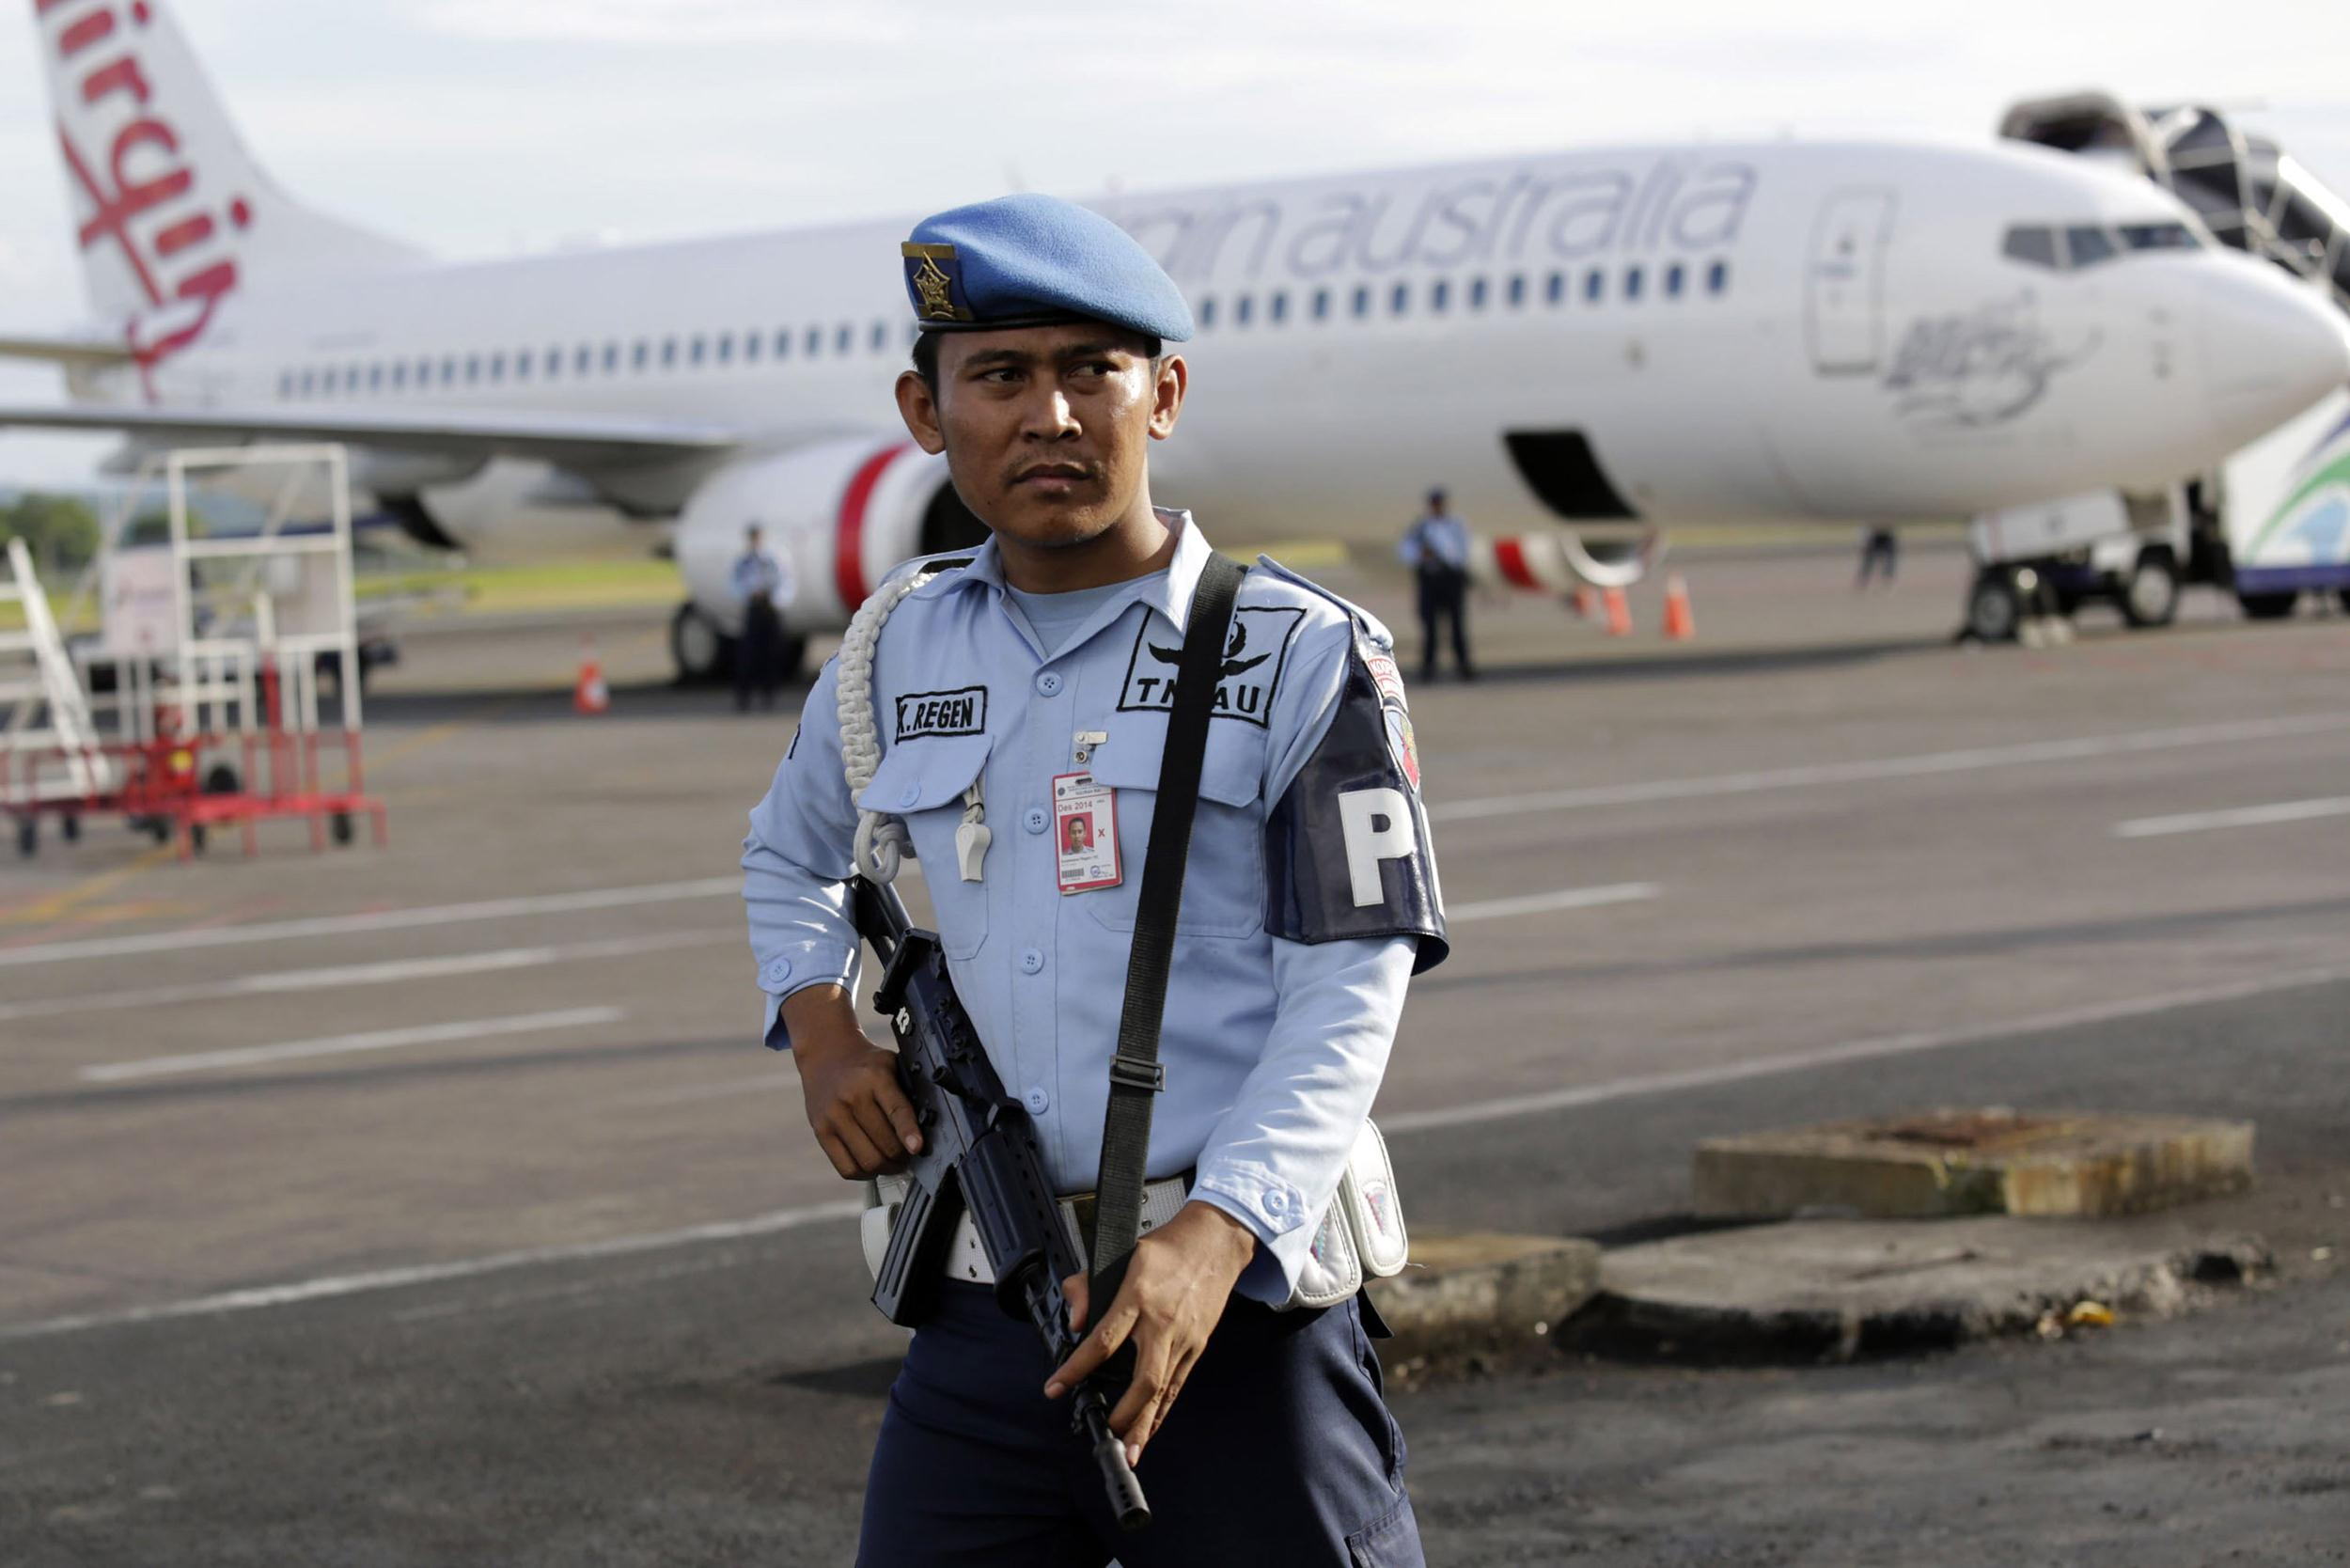 Image: A member of the Indonesian military stands guard near a Virgin Australia plane